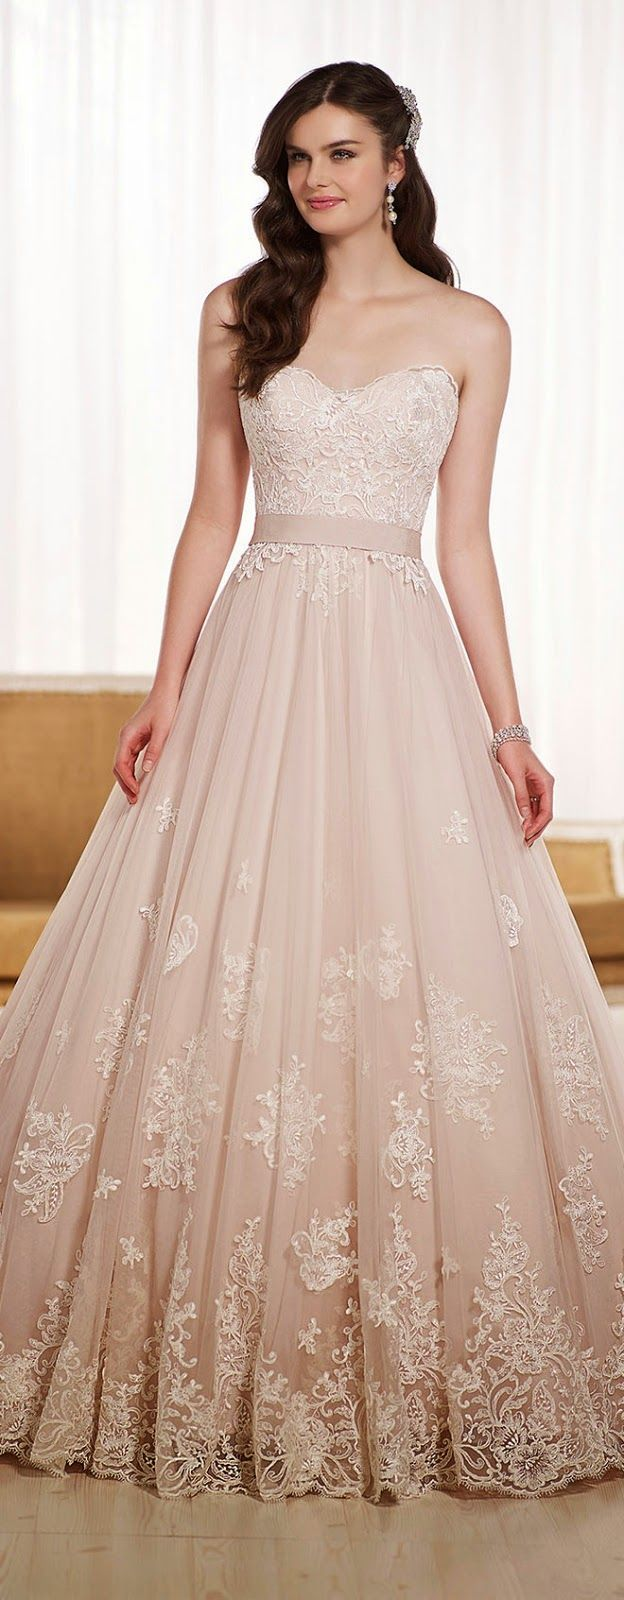 2310 best The Dress images on Pinterest | Wedding frocks, Short ...